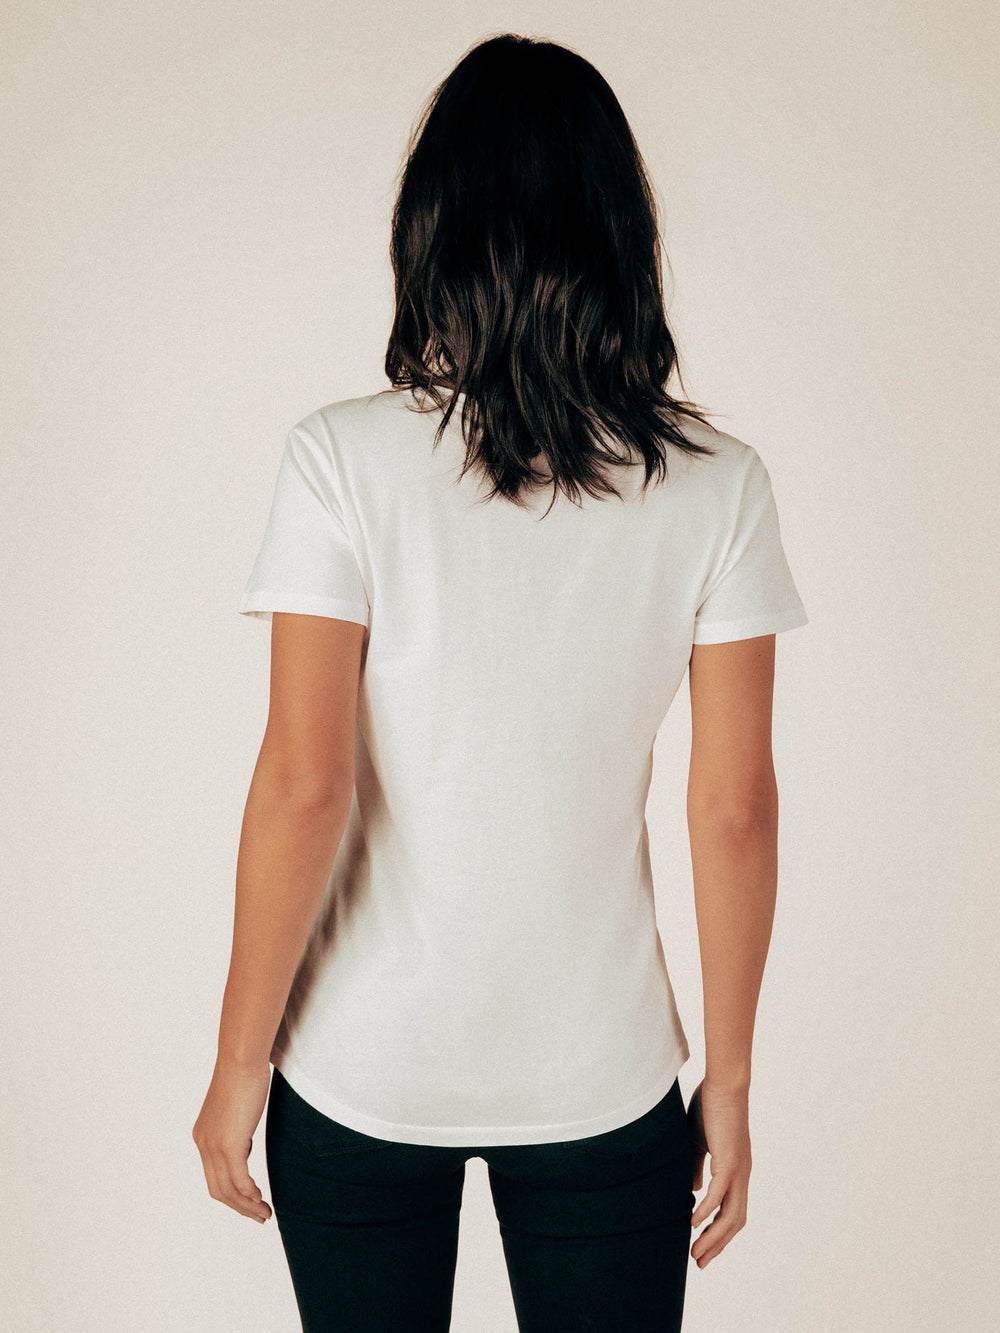 Creamy White V-Neck Curved Hem Tee - Graceful District